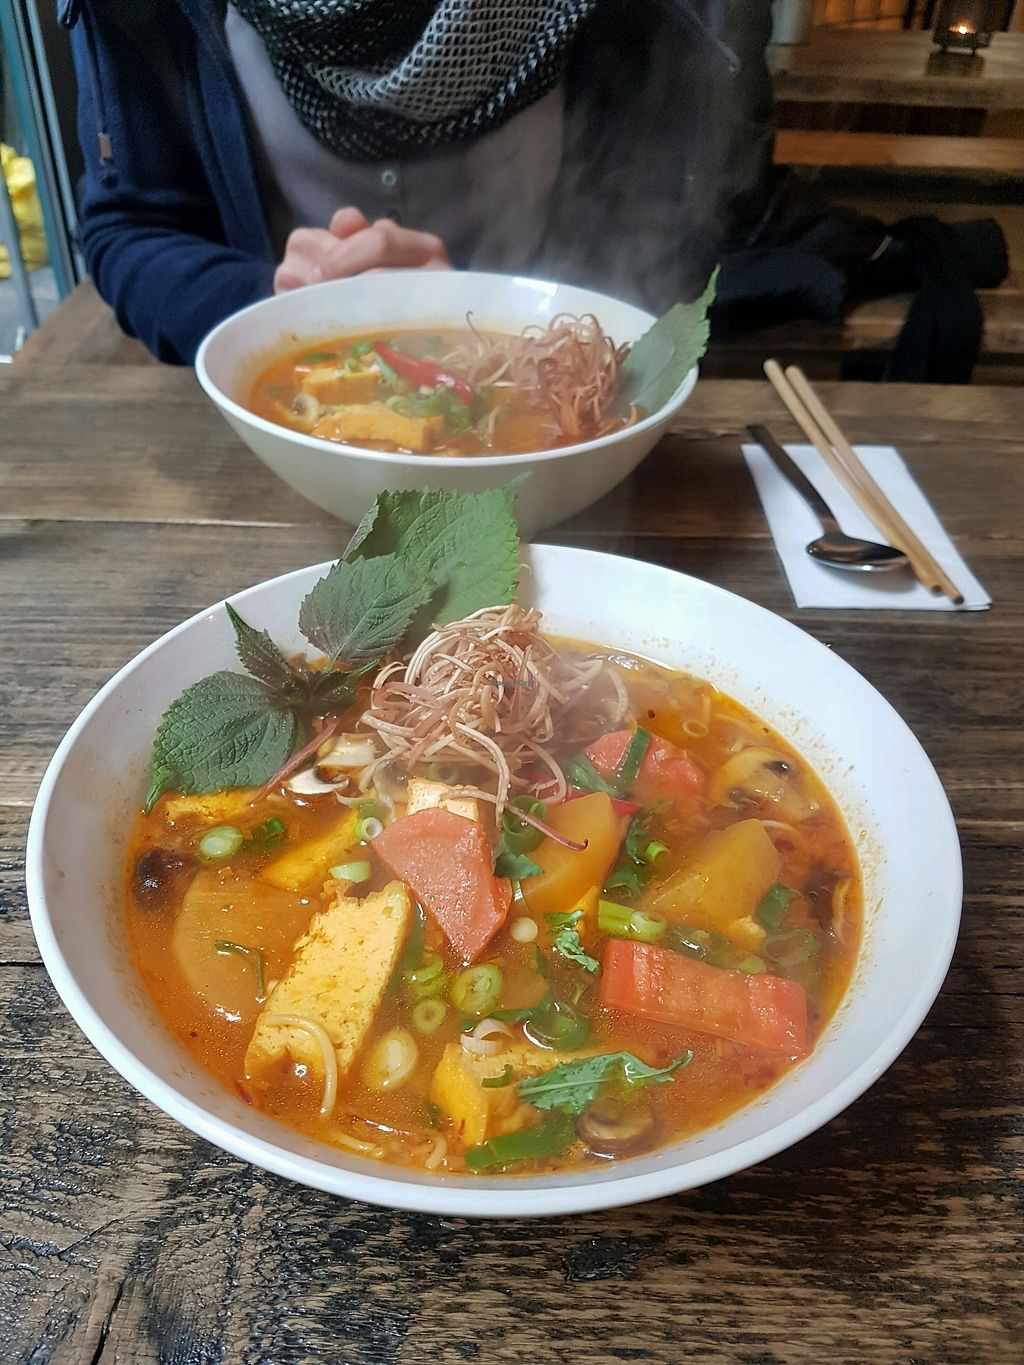 """Photo of Chum Chay  by <a href=""""/members/profile/uschiverena"""">uschiverena</a> <br/>spicy noodle soup <br/> March 22, 2018  - <a href='/contact/abuse/image/98106/374292'>Report</a>"""